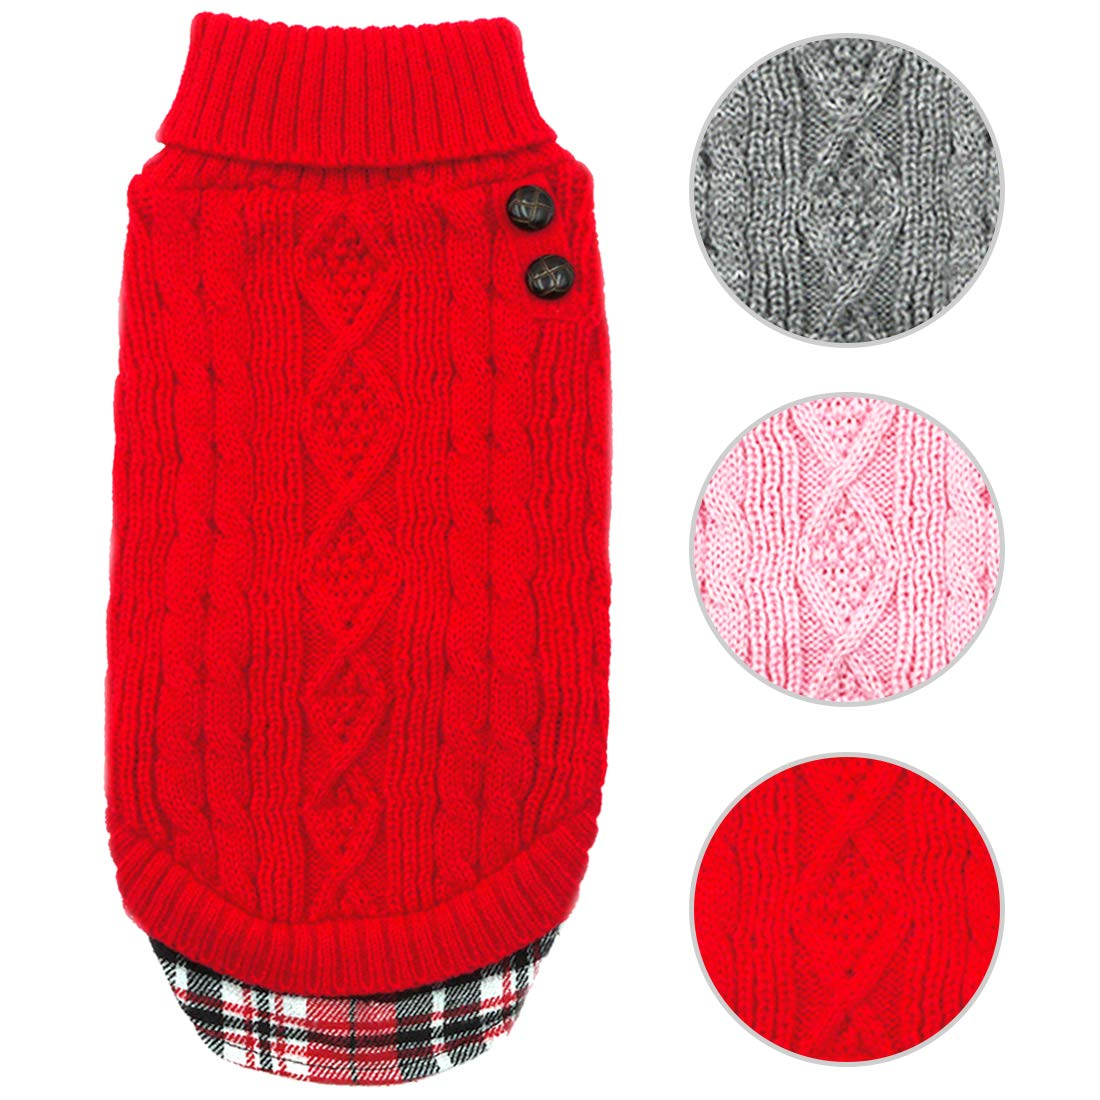 kyeese Small Dog Sweaters with Leash Hole Gingham Patchwork Doggie Sweater Knitwear Pullover Warm Pet Sweater for Fall Winter by kyeese